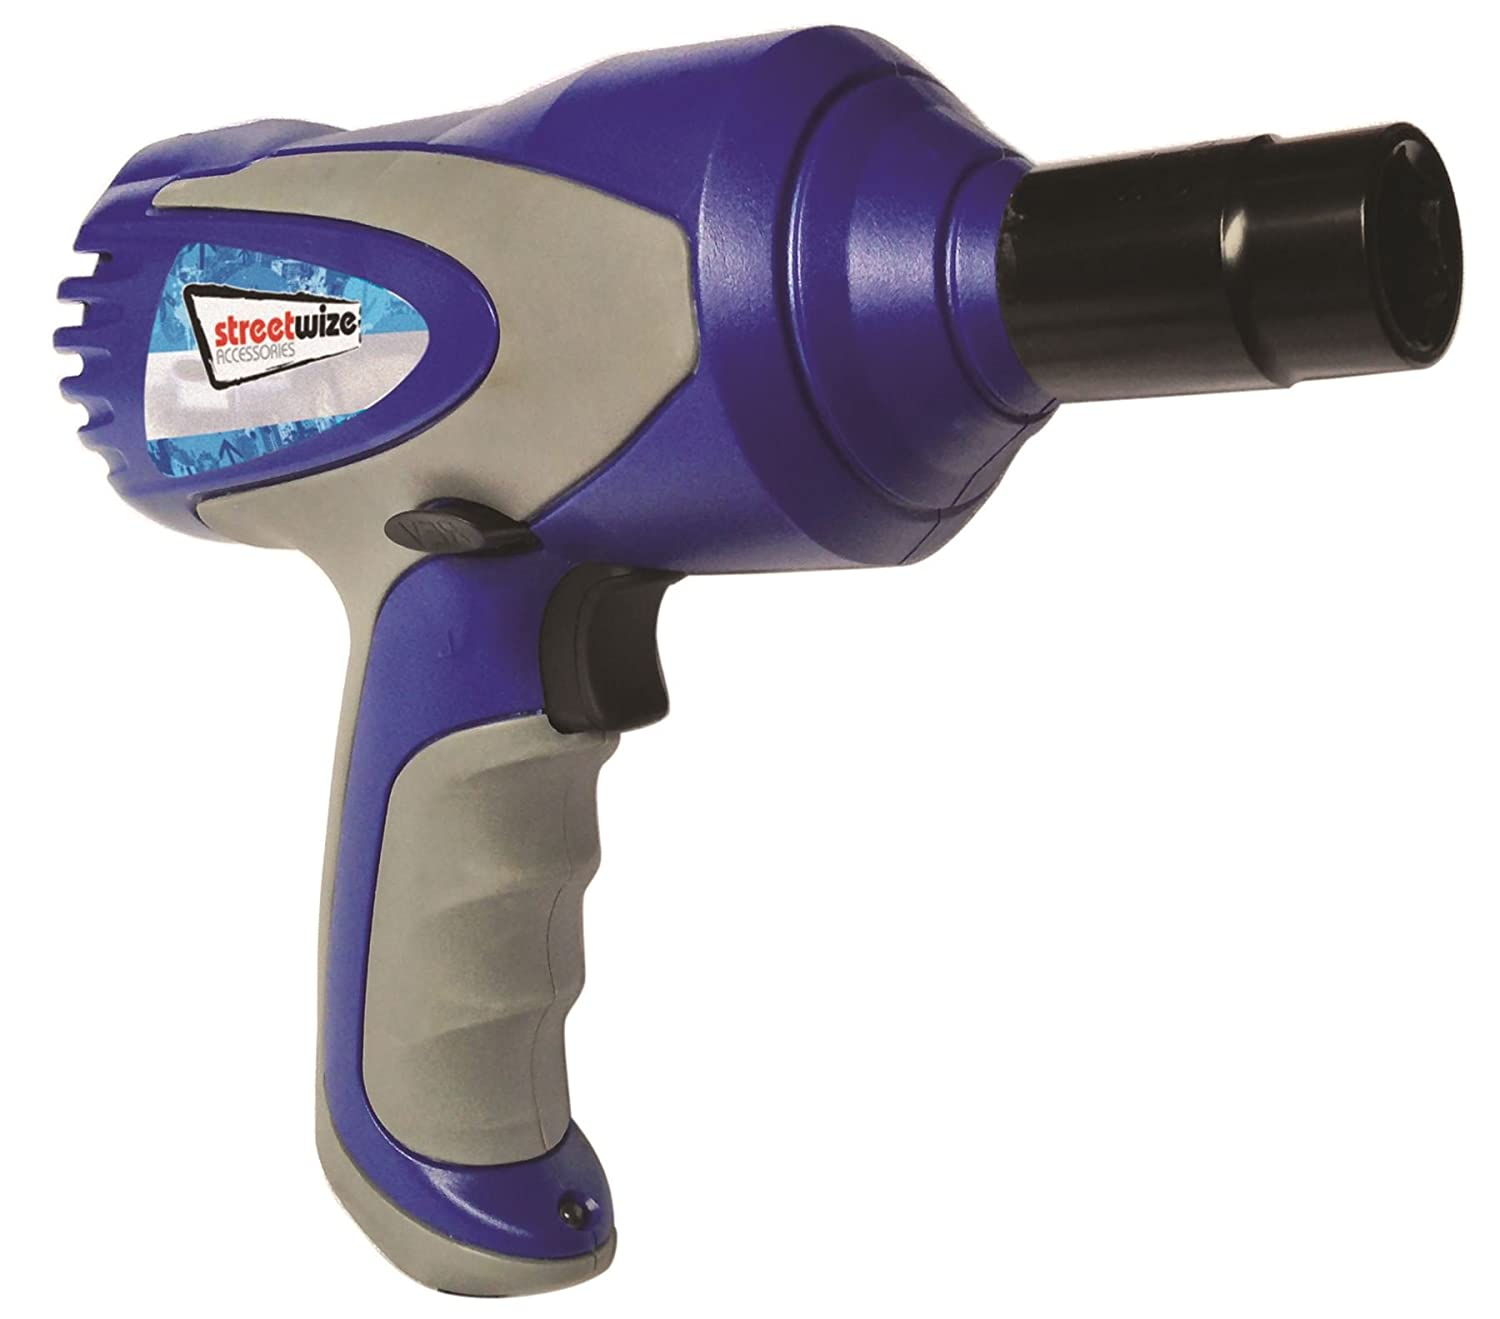 Streetwize SWTOOL8 Impact Wrench 12 V